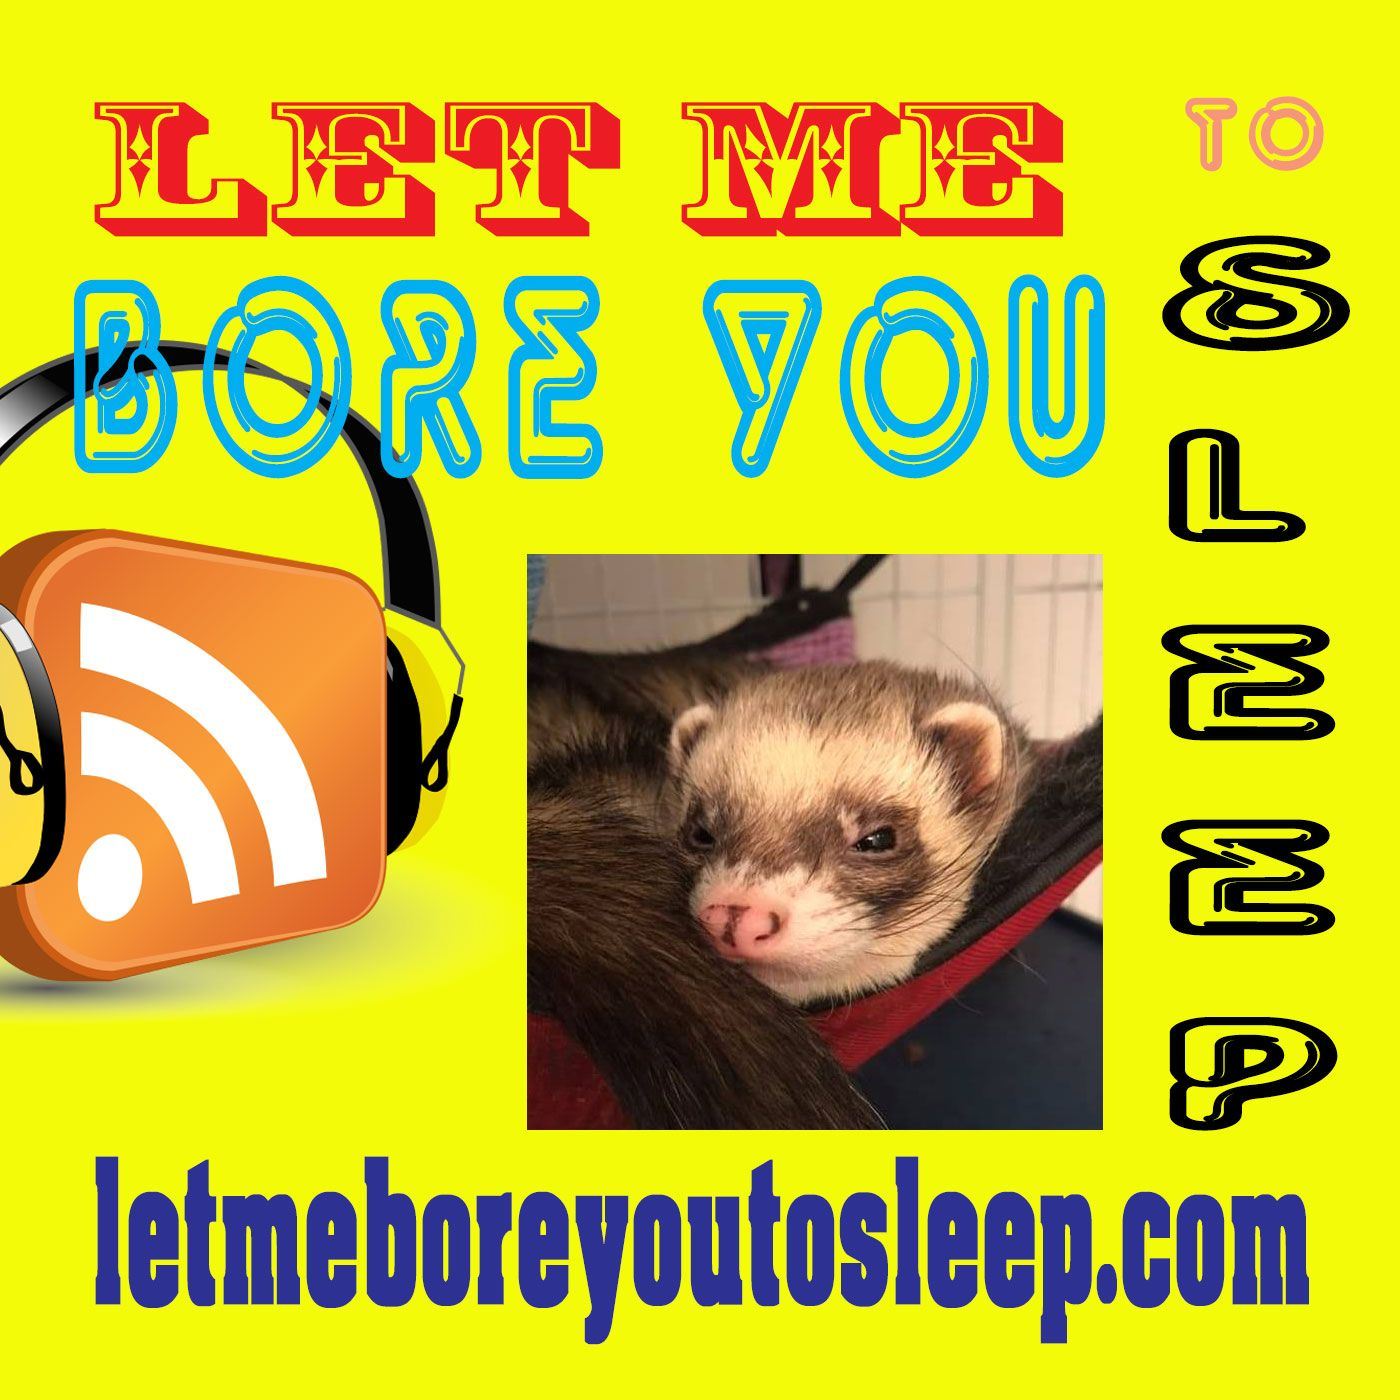 #91 Let me bore you to sleep - Jason Newland (6th February 2019) - letmeboreyoutosleep.com